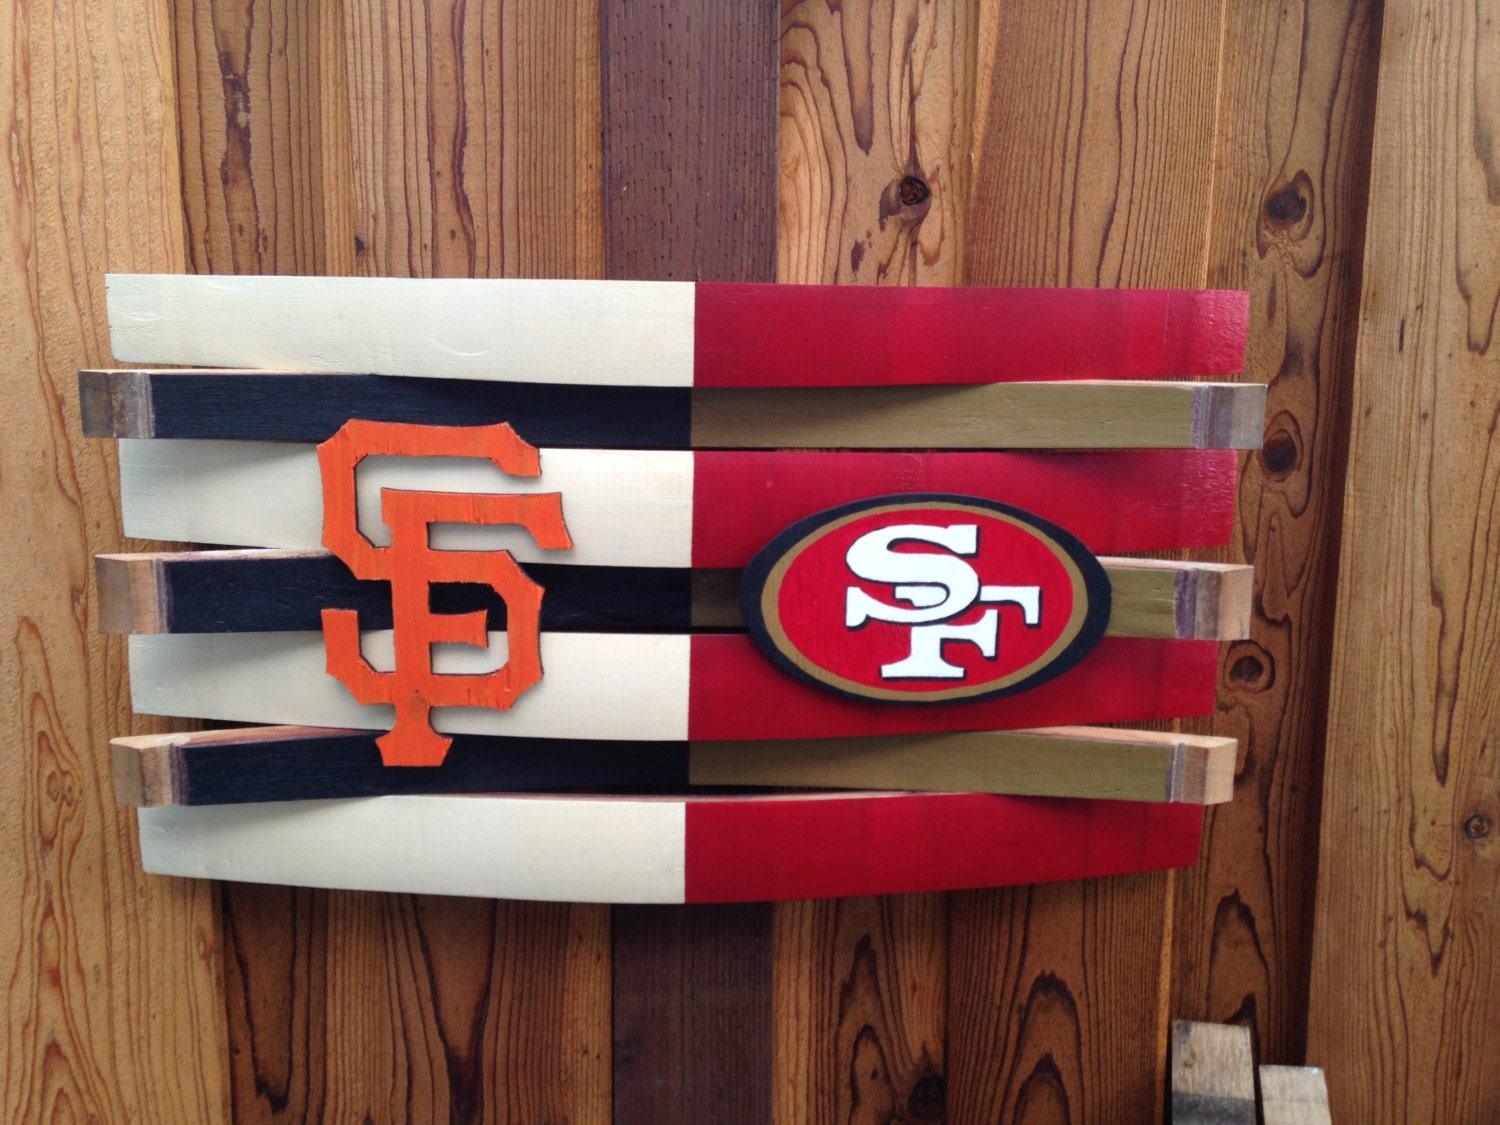 Diy Wall Art For Man Cave : Giants and ers football wall decor rustic wooden by